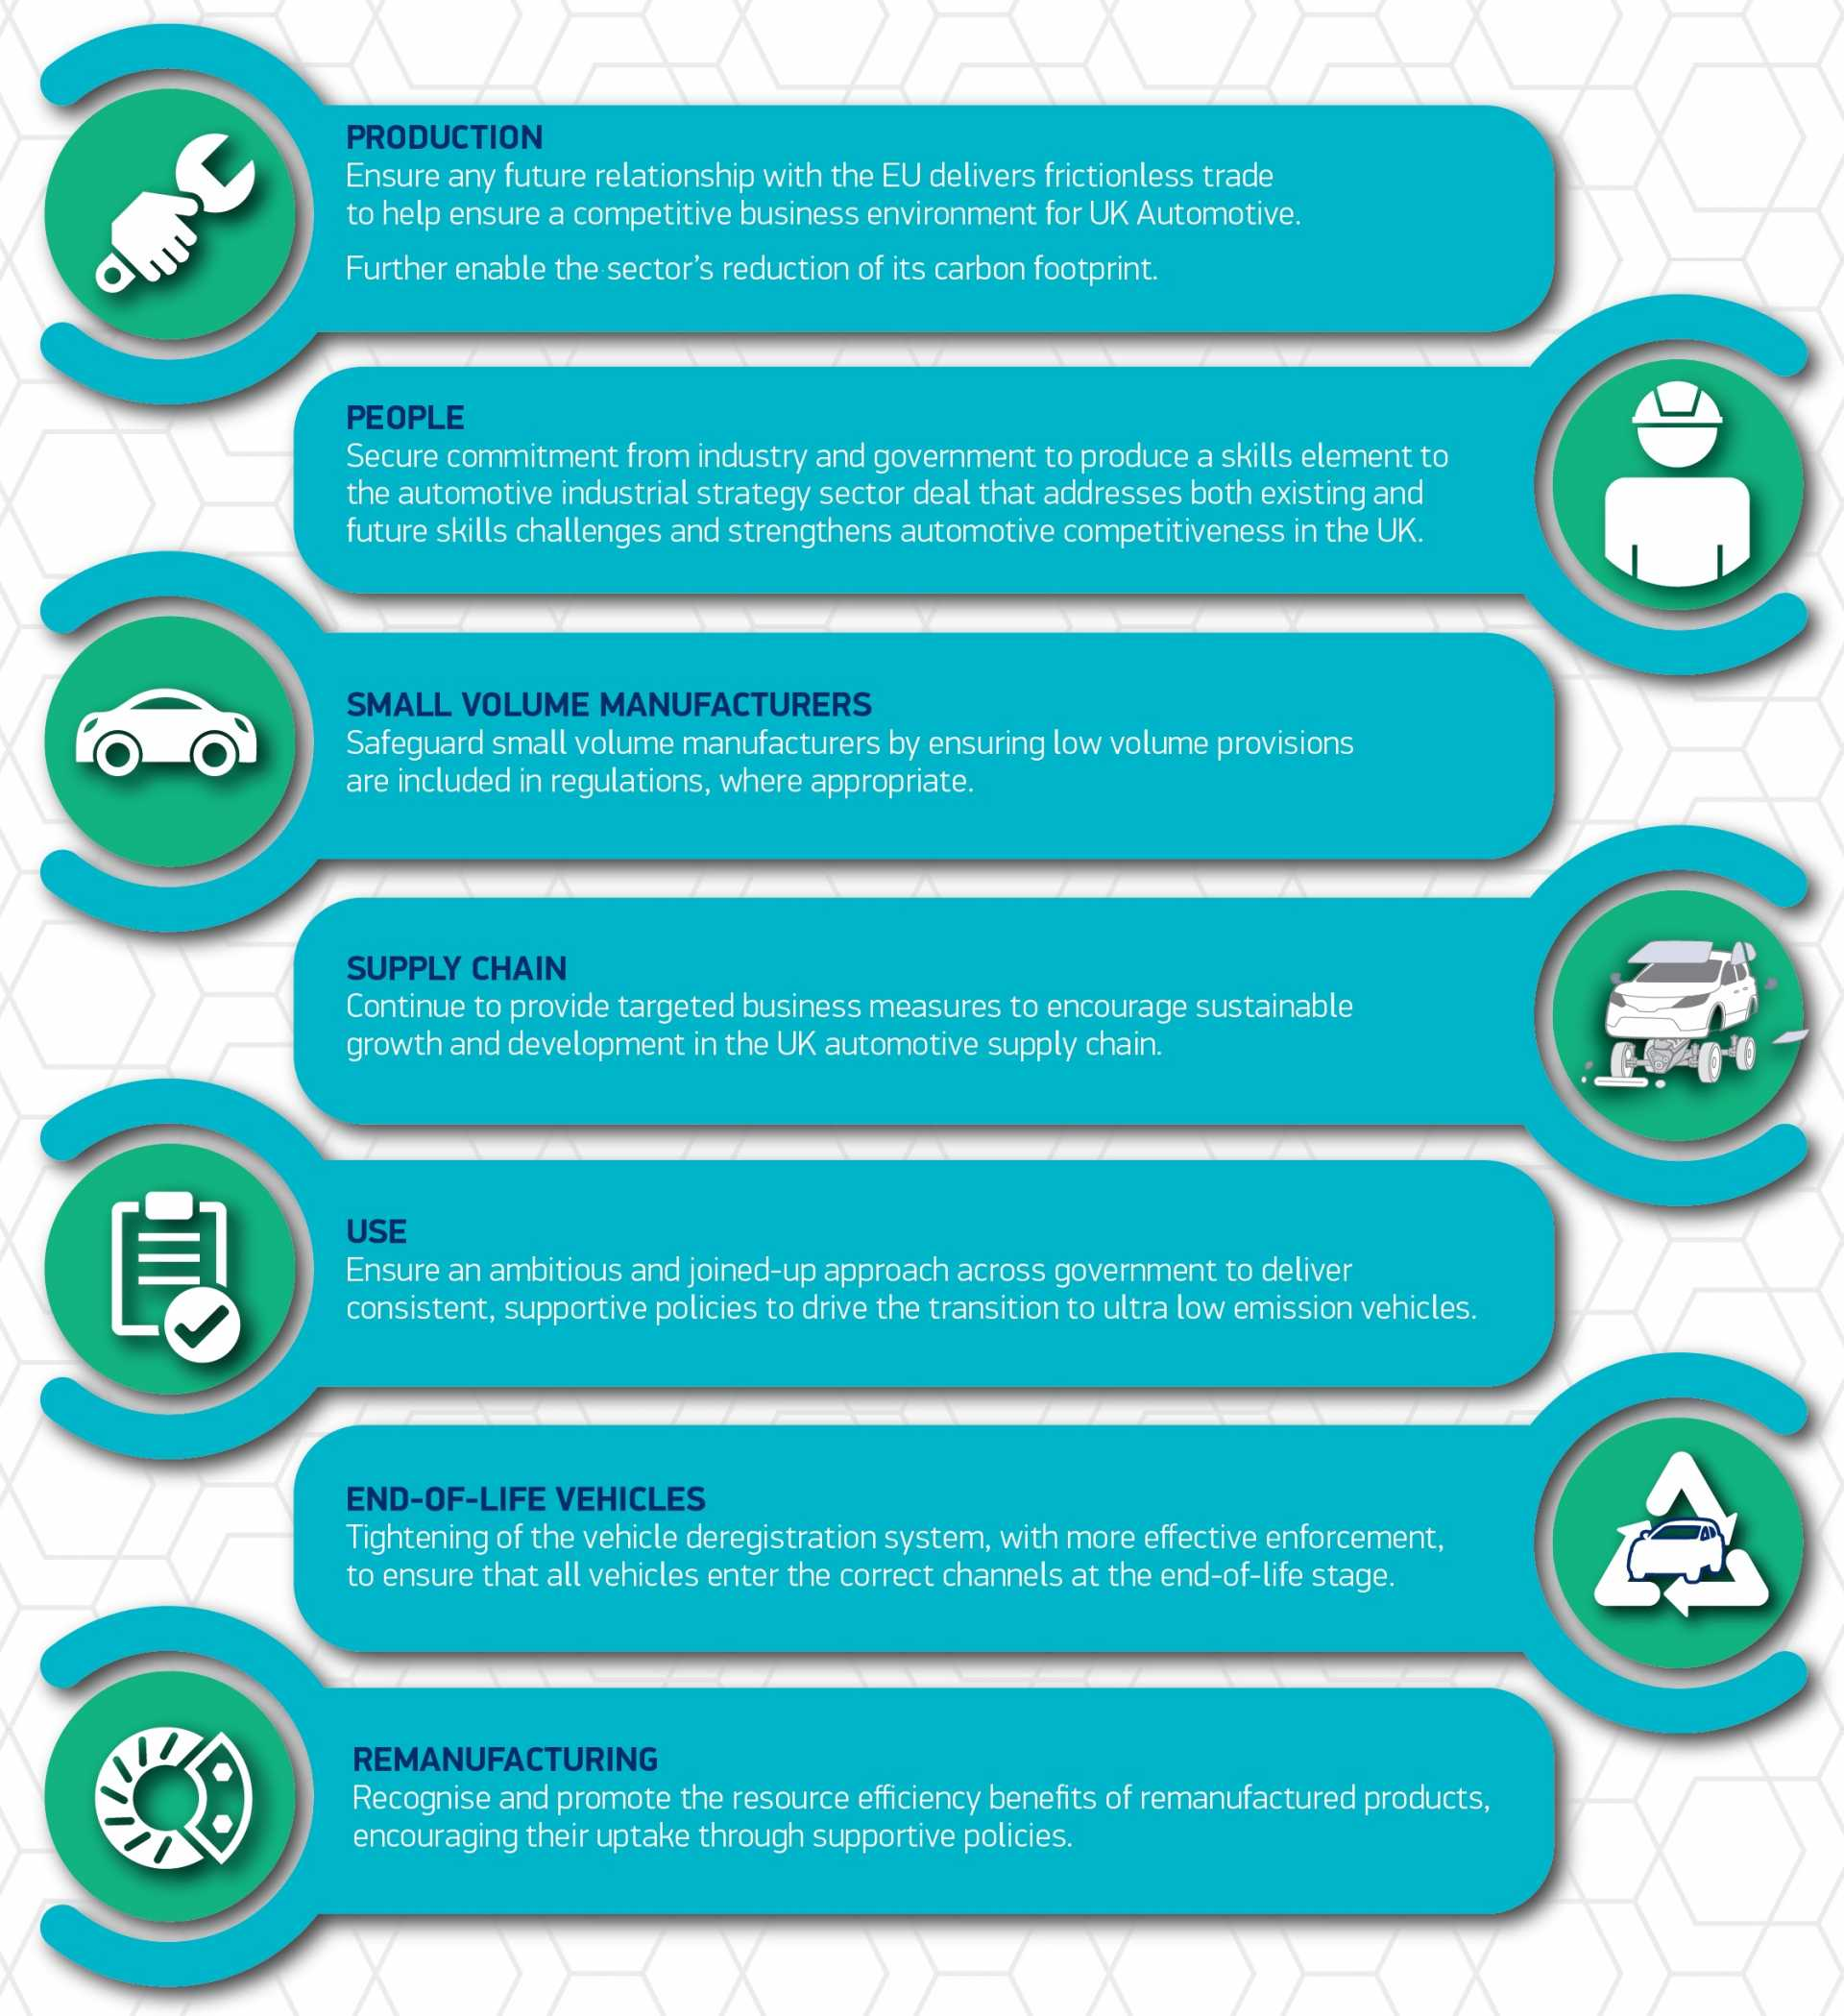 SMMT's key priorities for a sustainable UK automotive sector - July 2019 Infographic